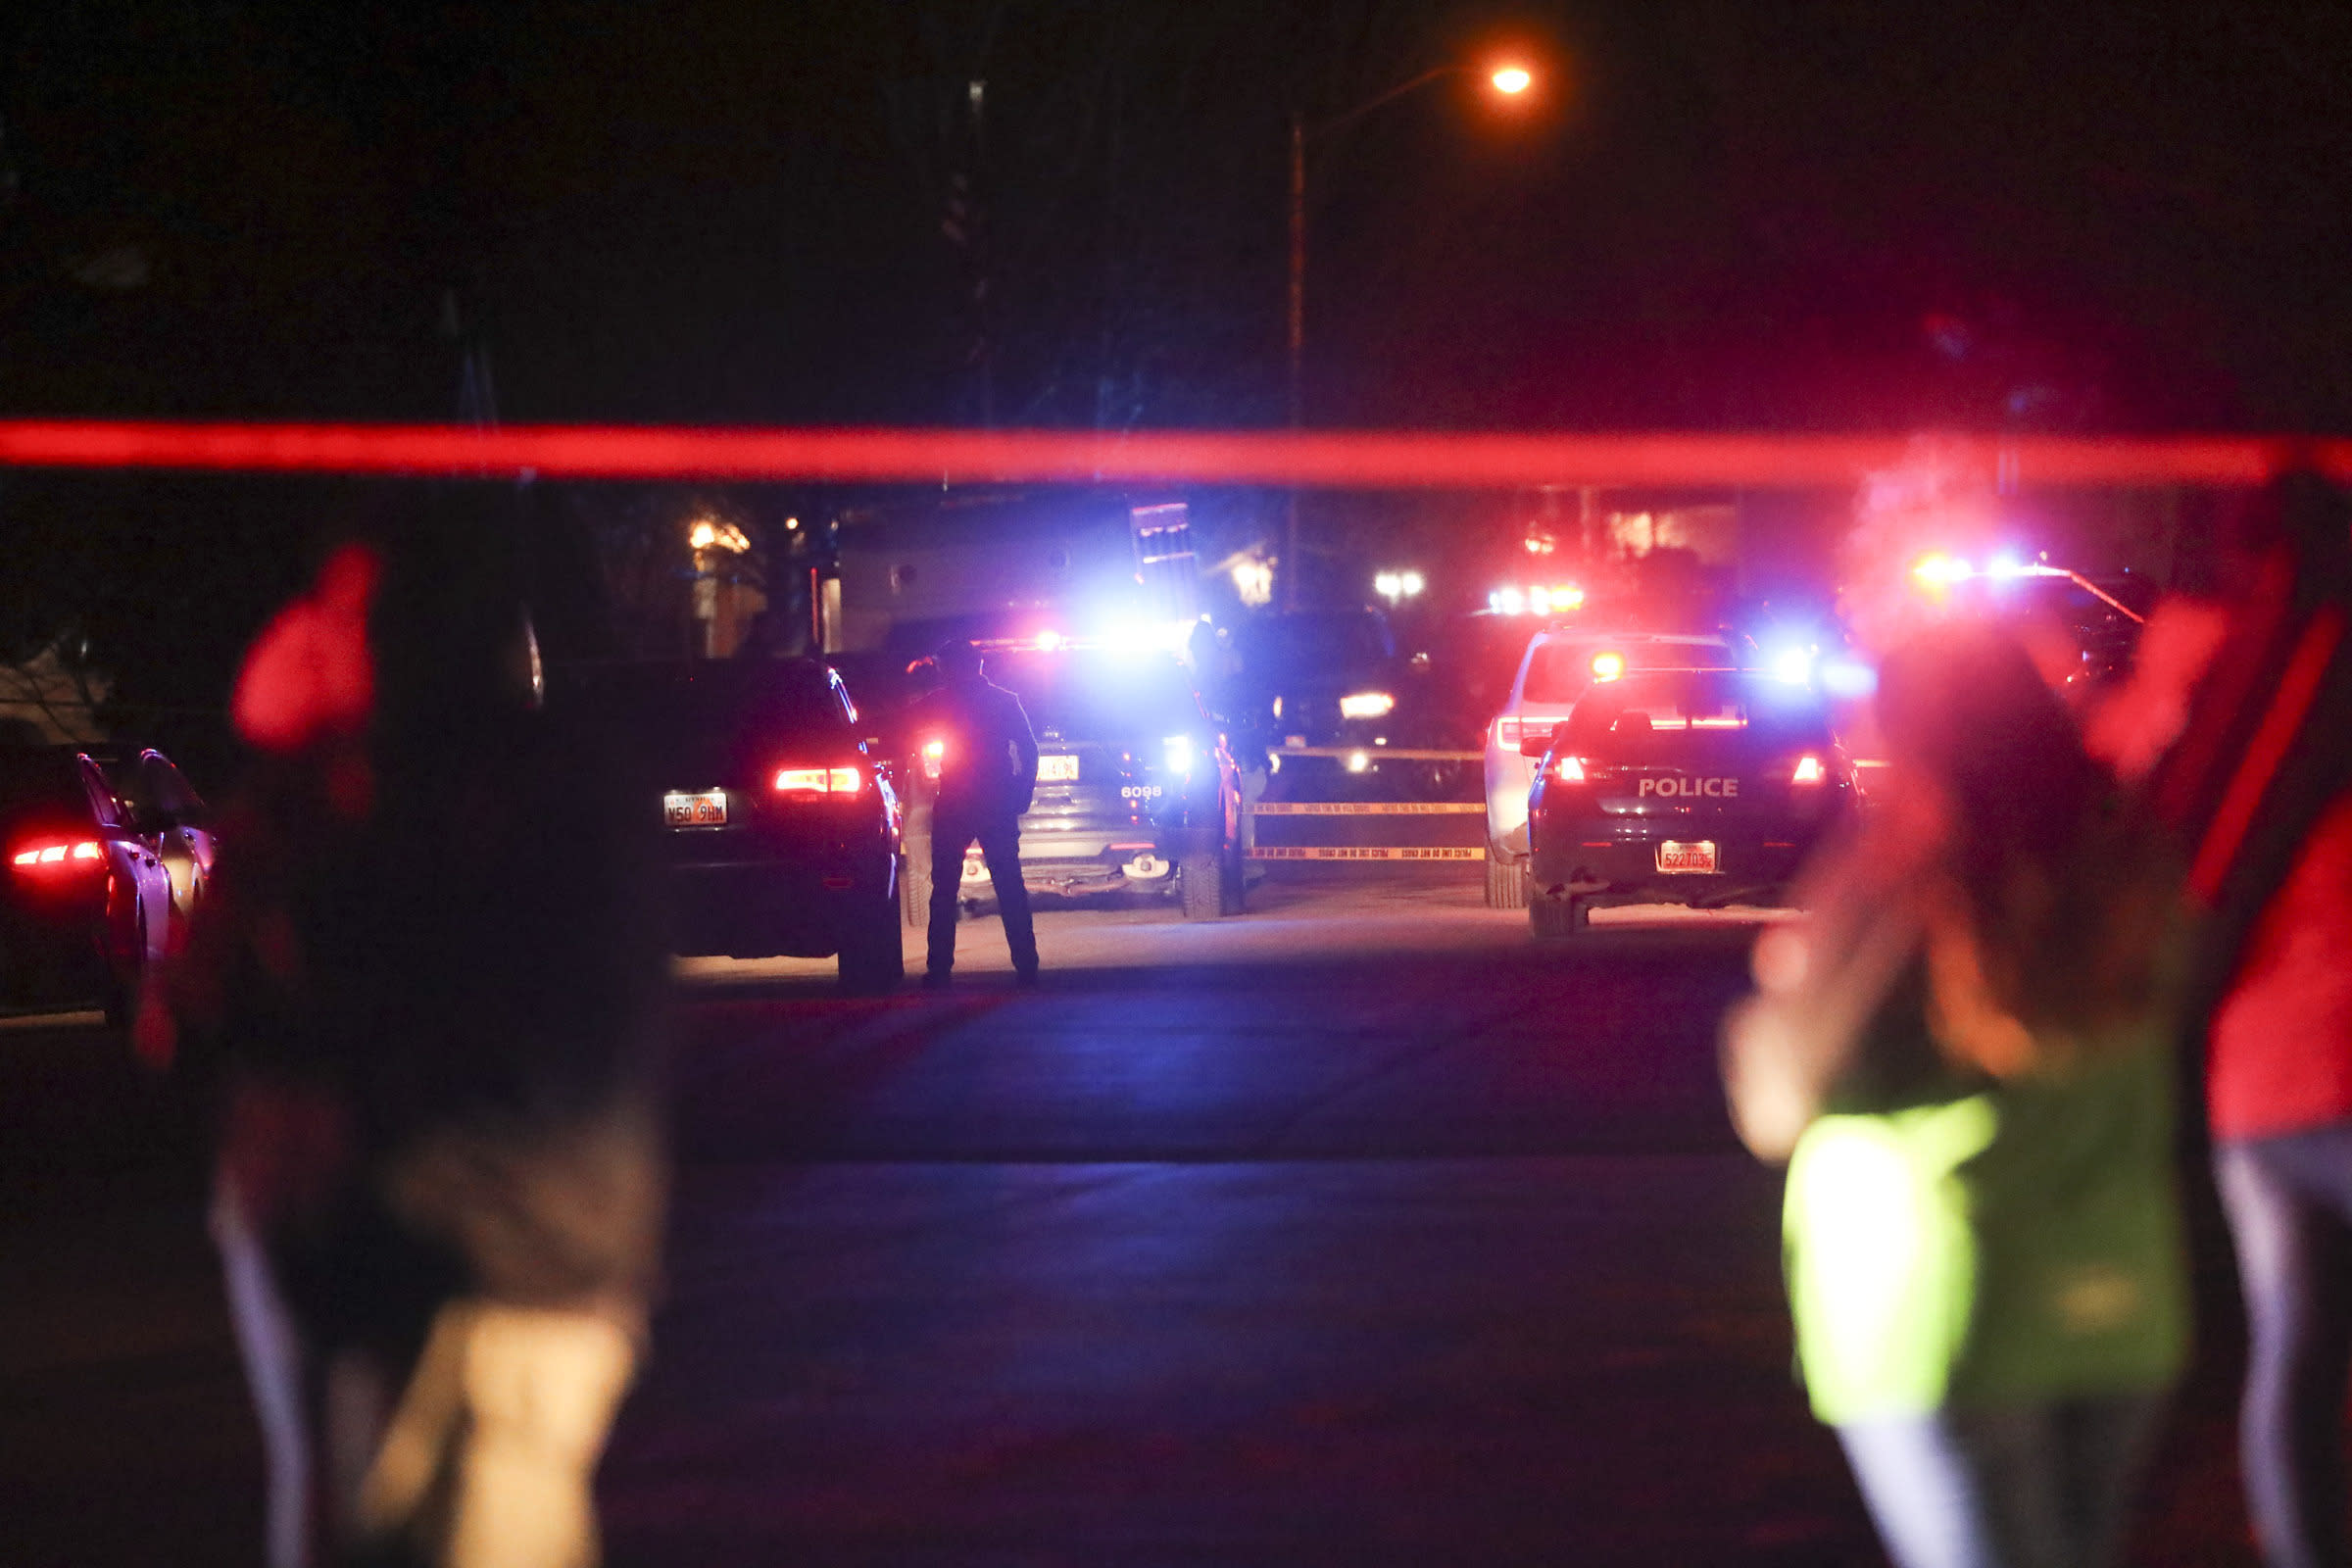 Killed, 1 Injured in Family Shooting in Salt Lake City Suburb